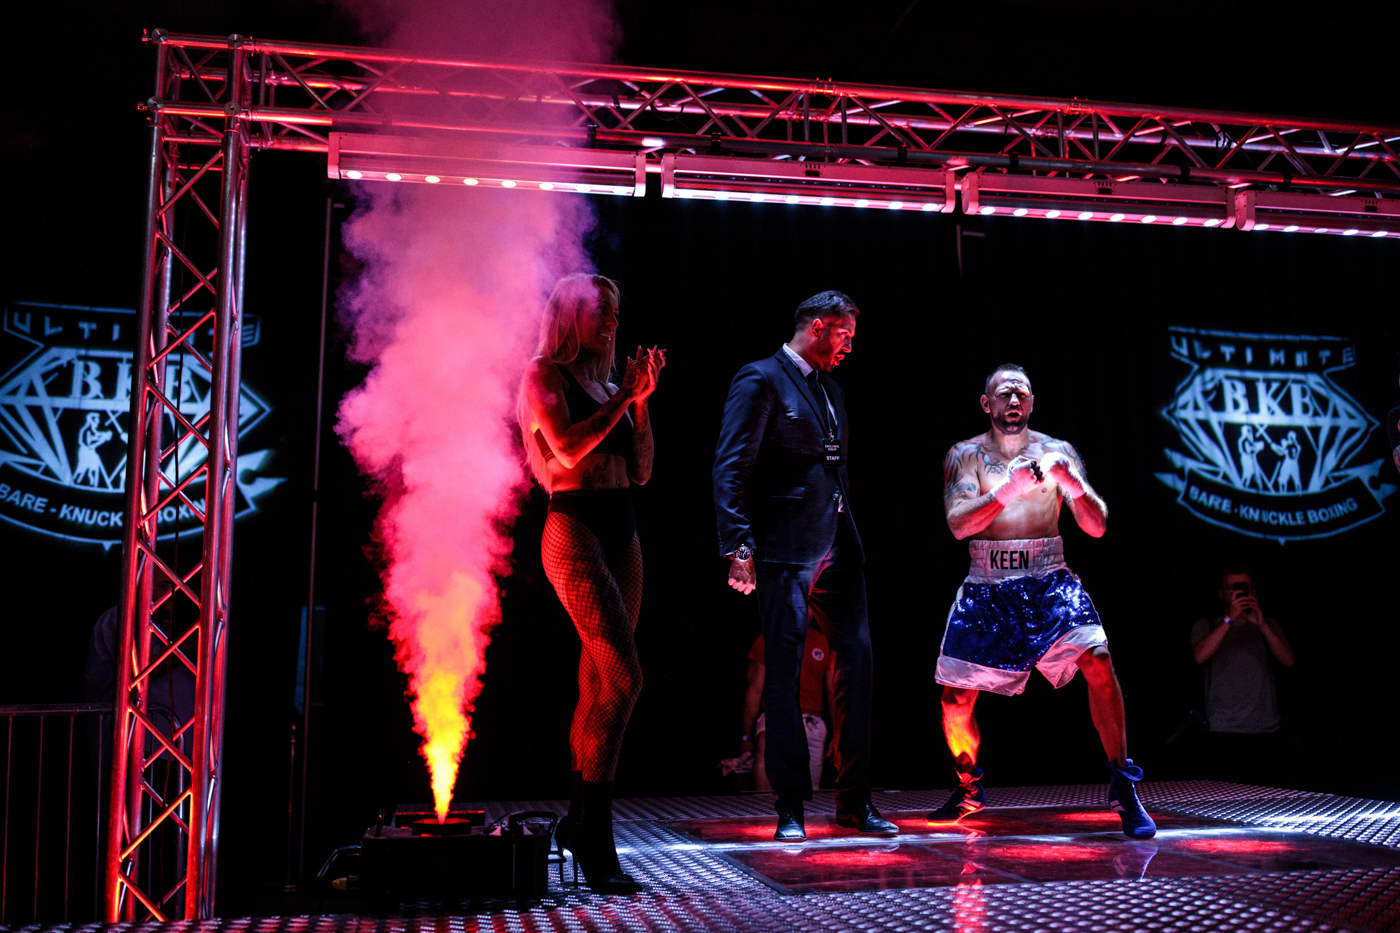 MANCHESTER, ENGLAND: Bare-knuckle boxer Duane Keen, 40 from Blaenavon in Wales, enters the arena during an Ultimate Bare Knuckle Boxing (UBKB) event at Bowlers Exhibition Centre on August 4, 2018.